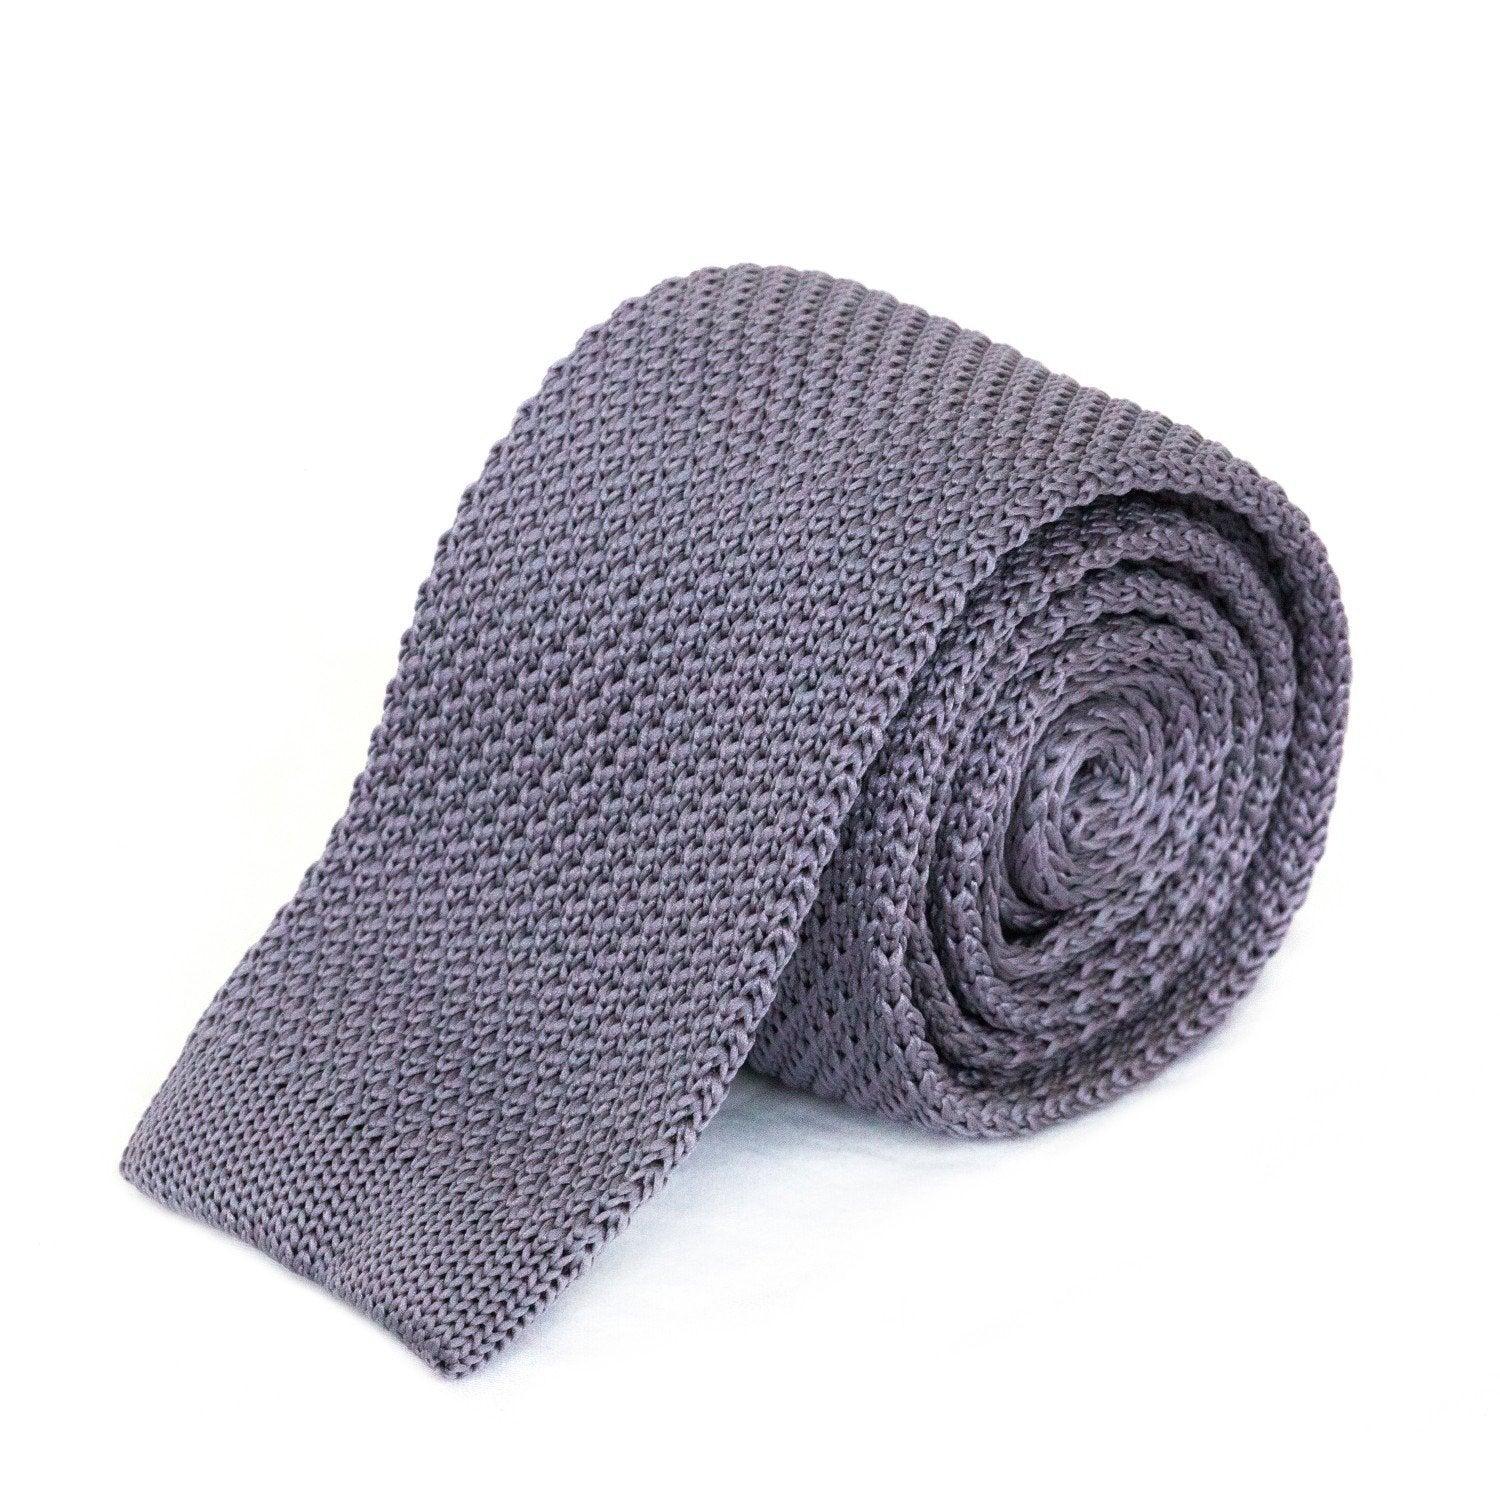 Dark Grey Knit Tie Ties Cuffed.com.au